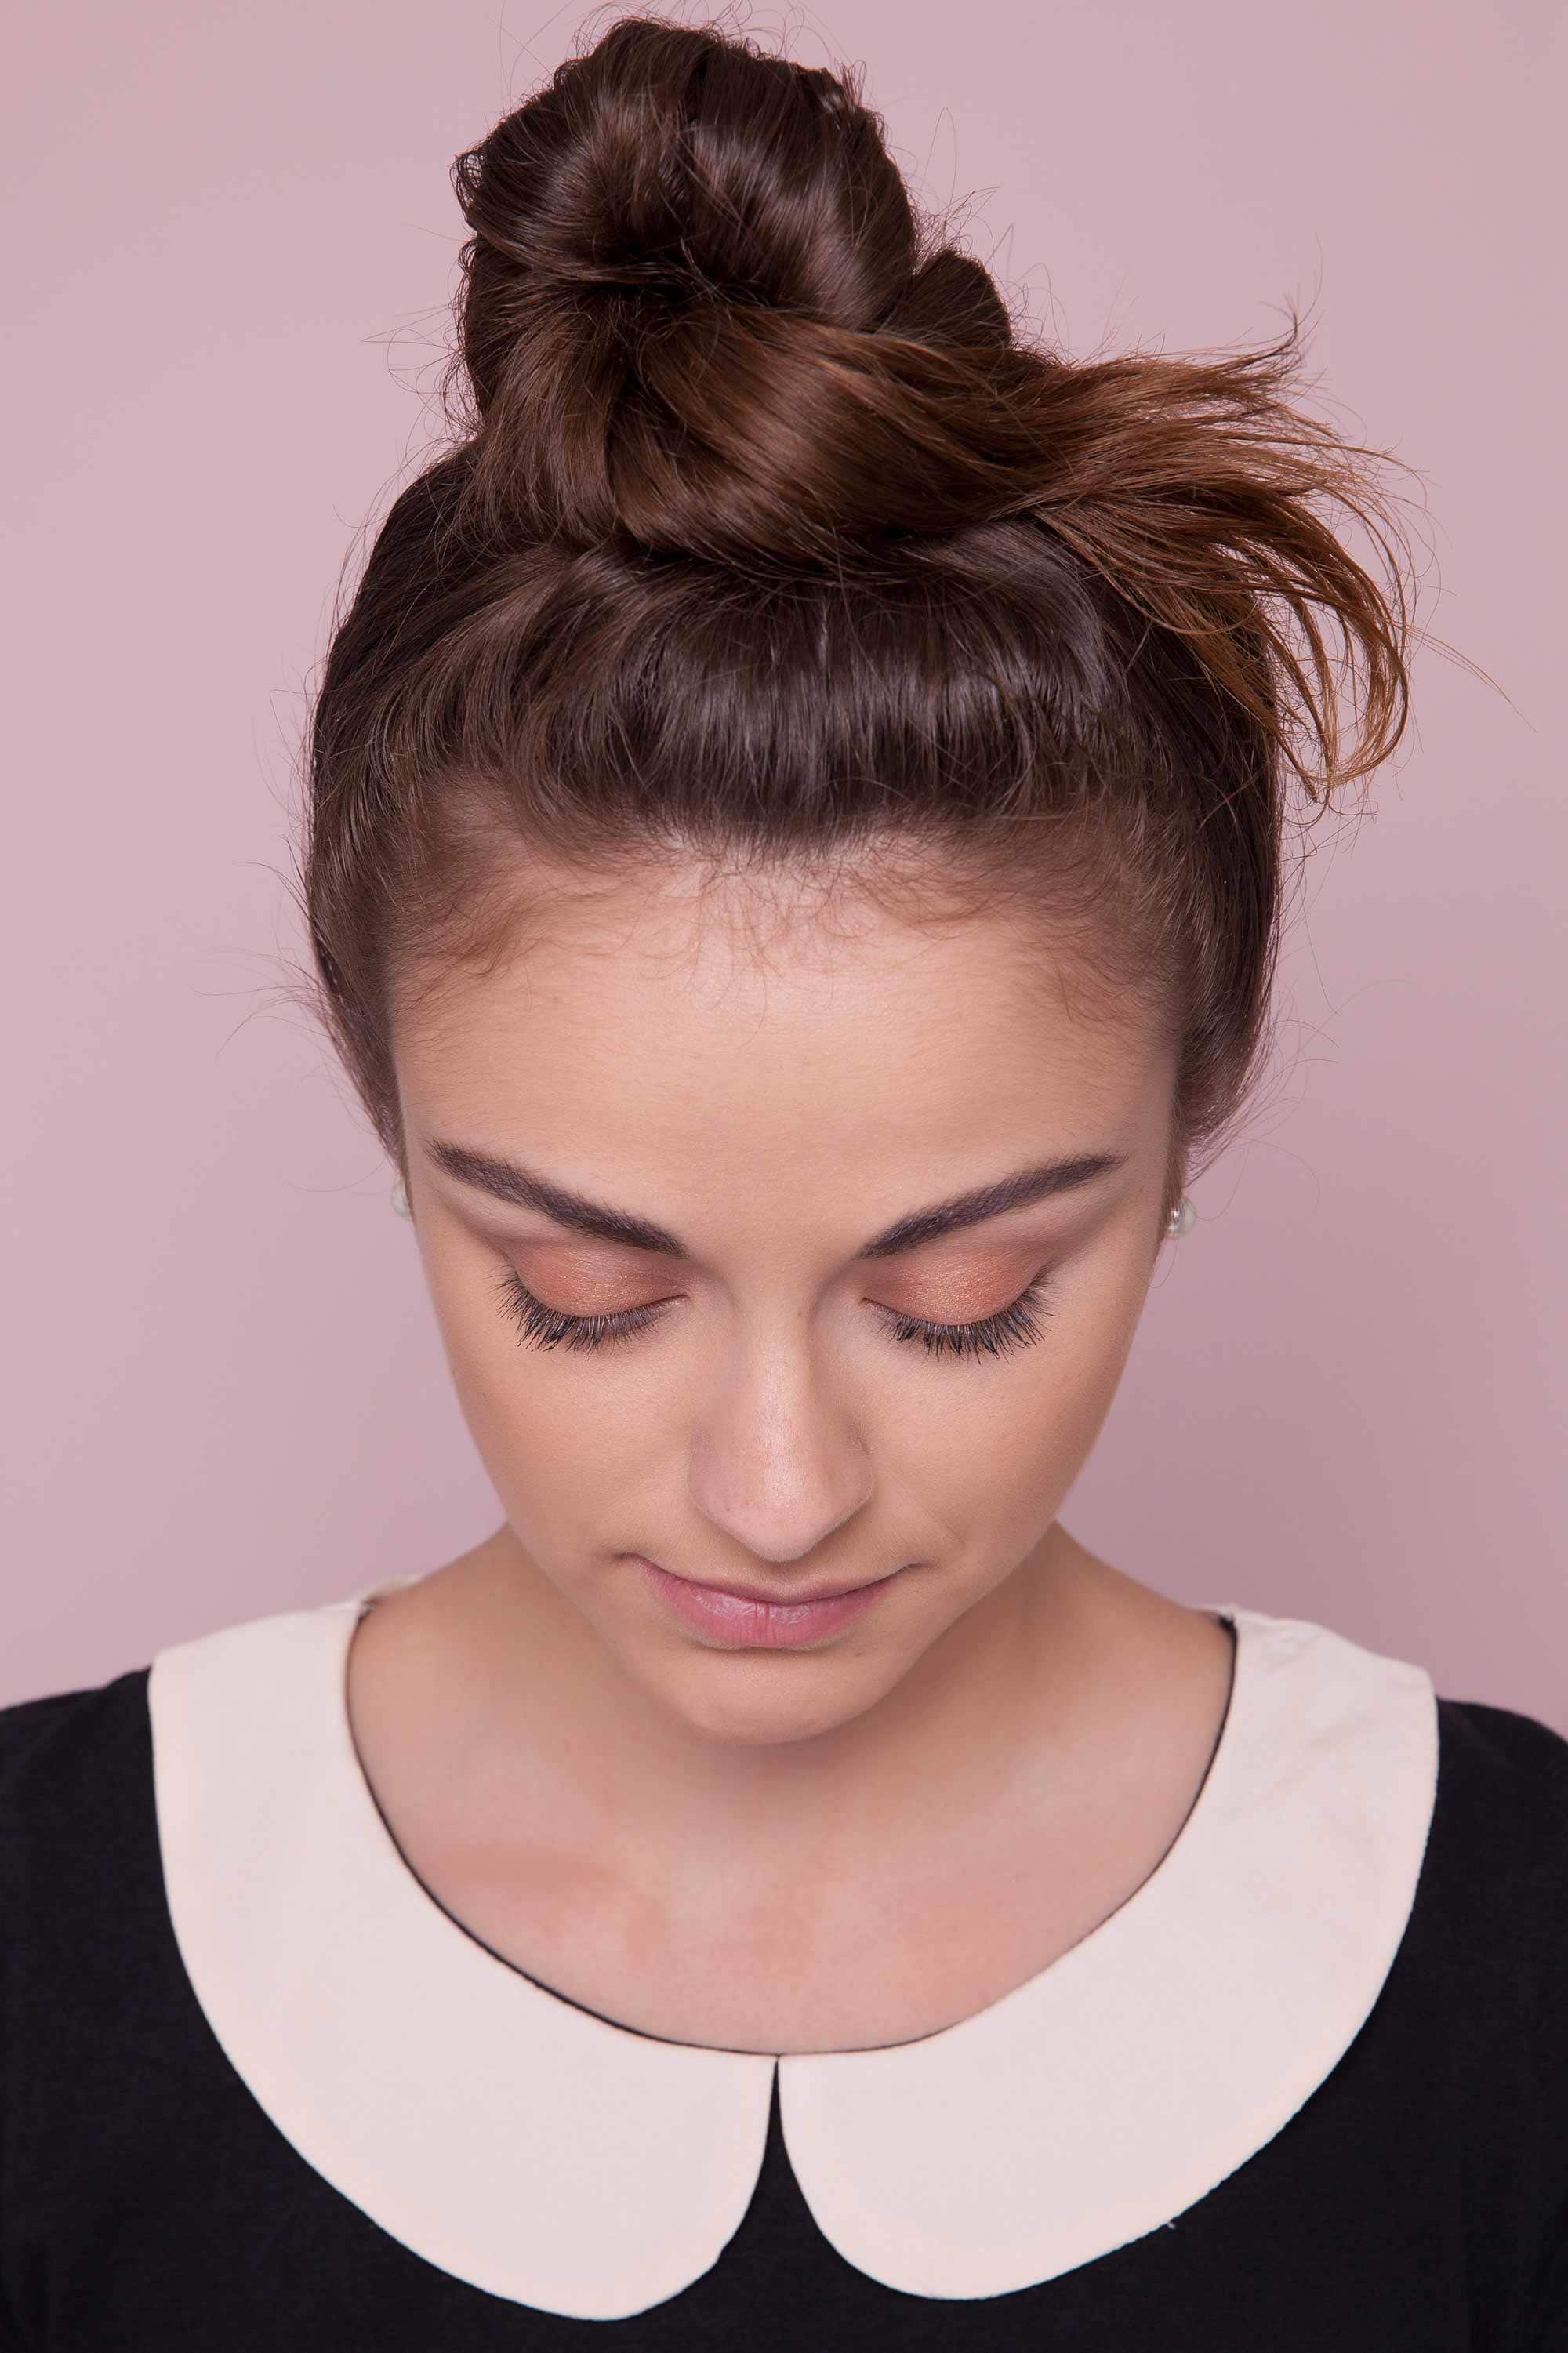 40+Latest styles Messy Buns -quick and easy ways! 8